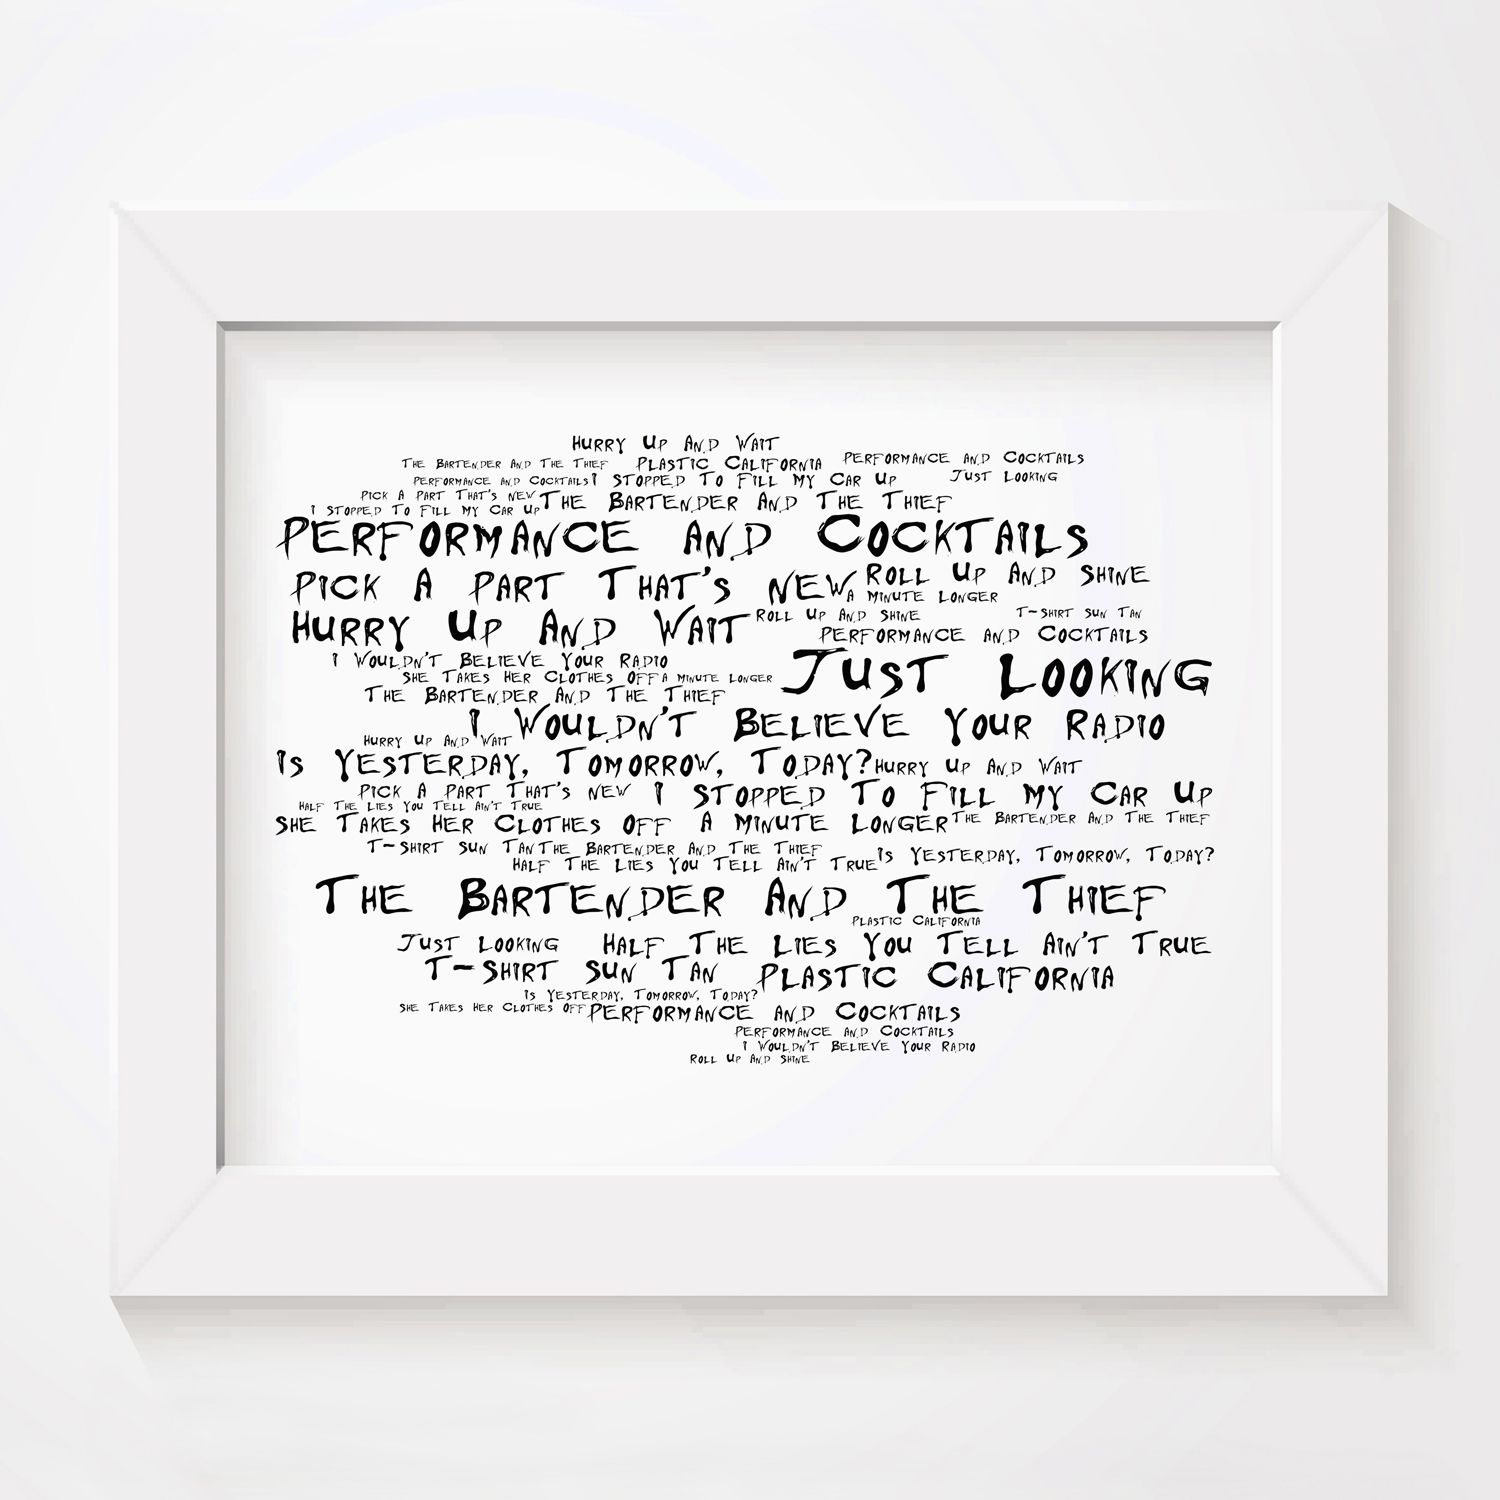 Stereophonics Performance And Cocktails limited edition typography lyrics art print, signed and numbered wall art poster available from www.lissomeartstudio.com